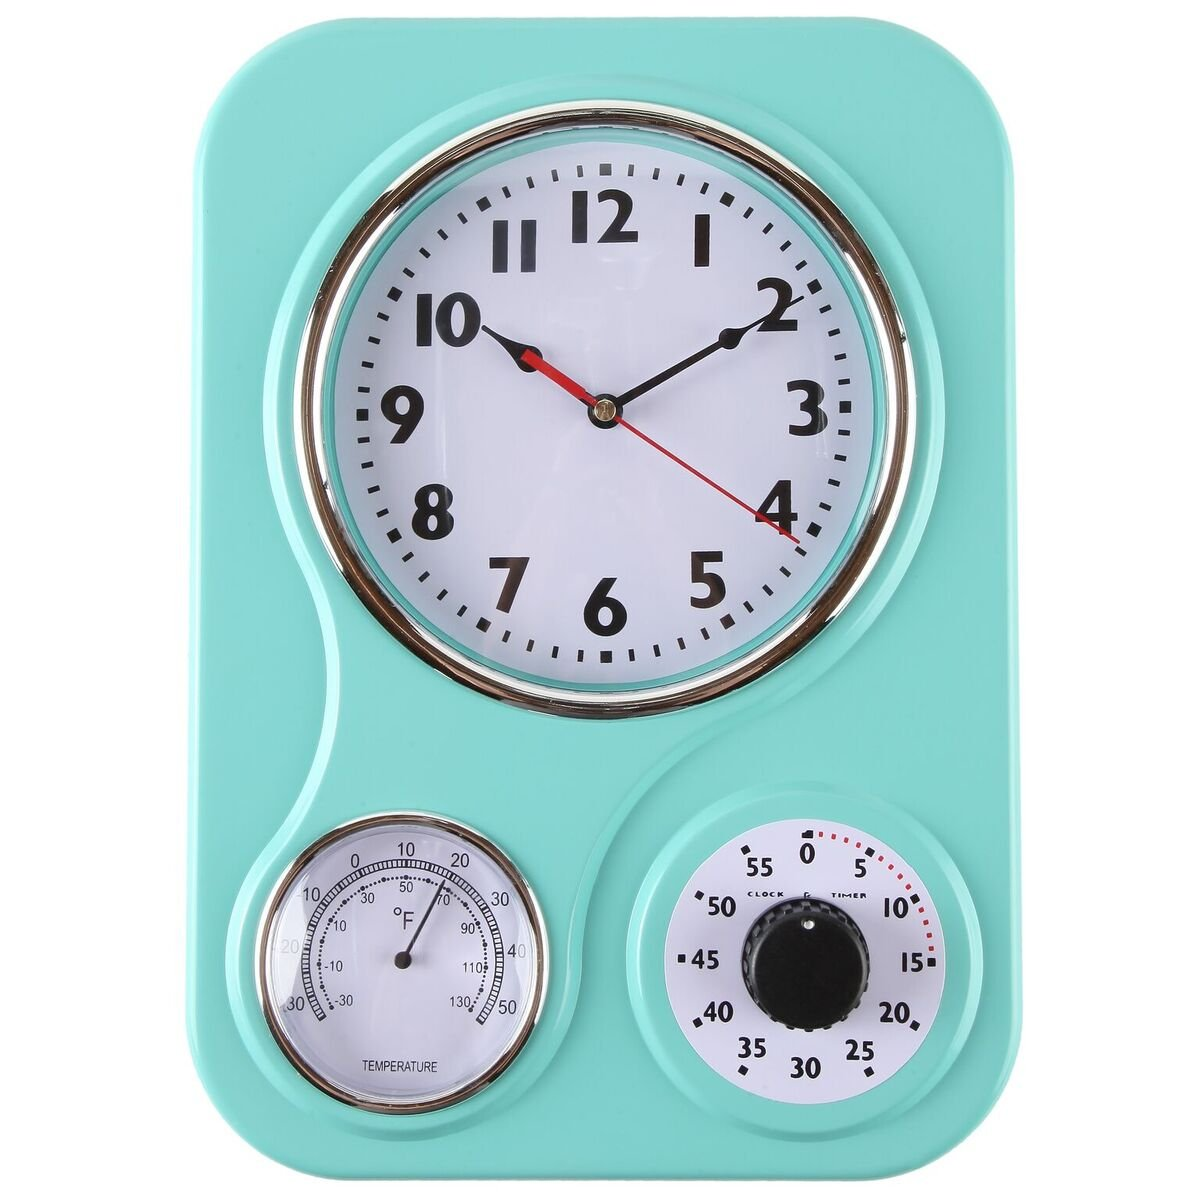 Lily's Home Retro Kitchen Wall Clock, with a Thermometer and 60-Minute Timer, Ideal for any Kitchen, Turquoise (9.5 in x 13.3 in)